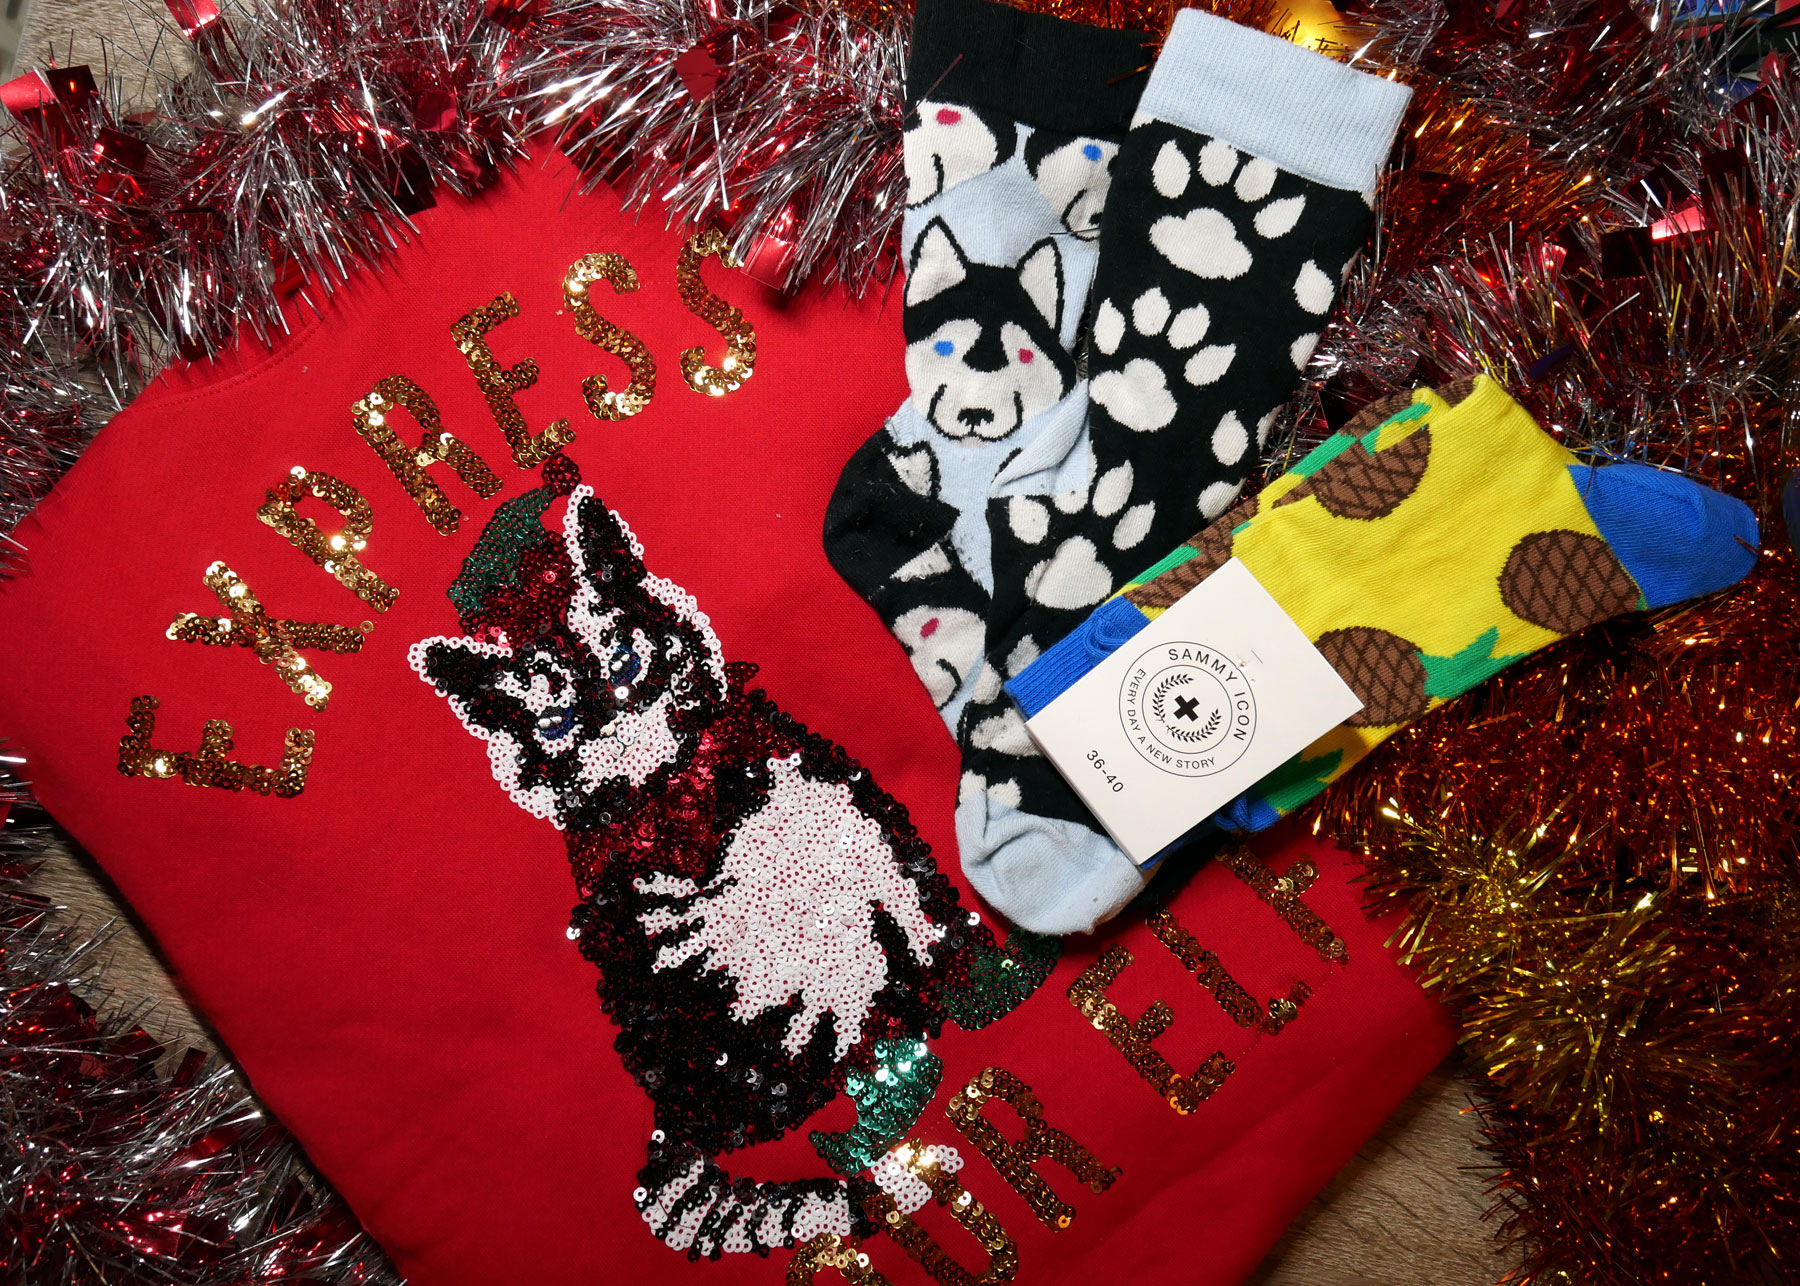 Socken-giveaway-sammy-icon-funny-ugly-christmas-sweater-preparation-hm.jpg